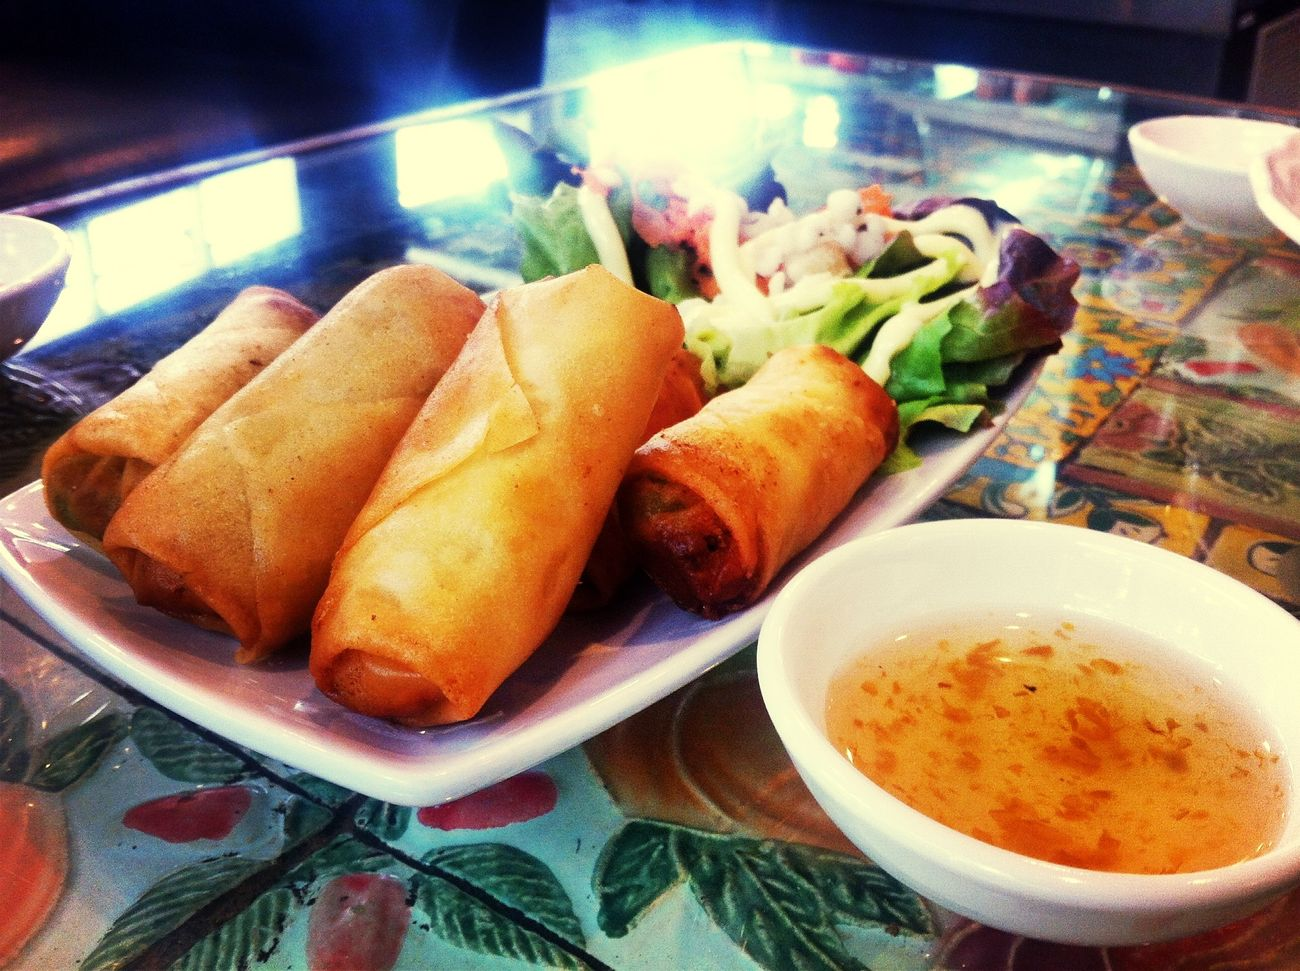 Thai Food Spring Rolls Enjoy Eating Lunch Time!